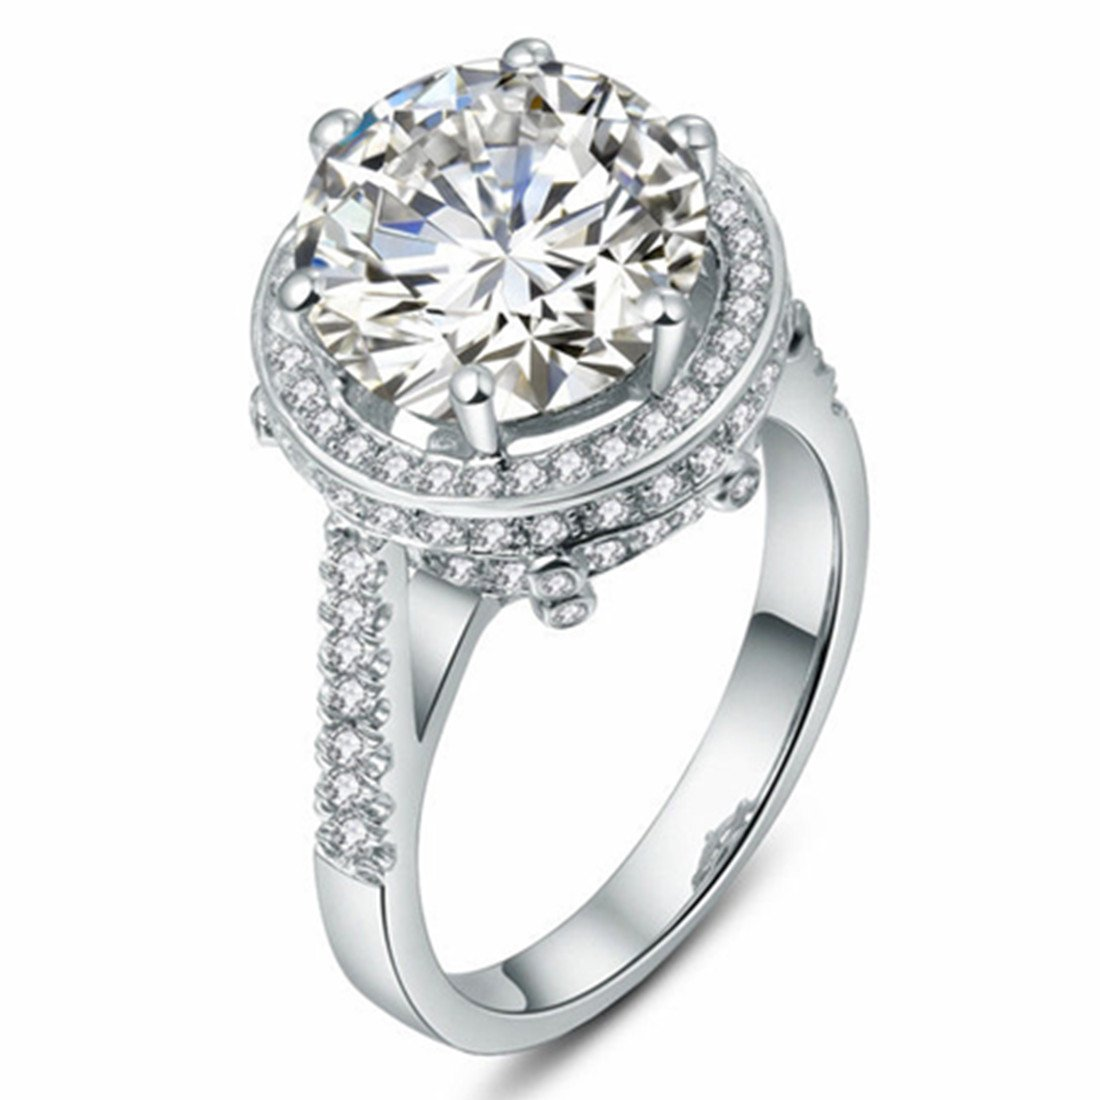 5CT Awesome NSCD Simulated Diamond Engagement Ring for Women Sterling Silver Jewelry